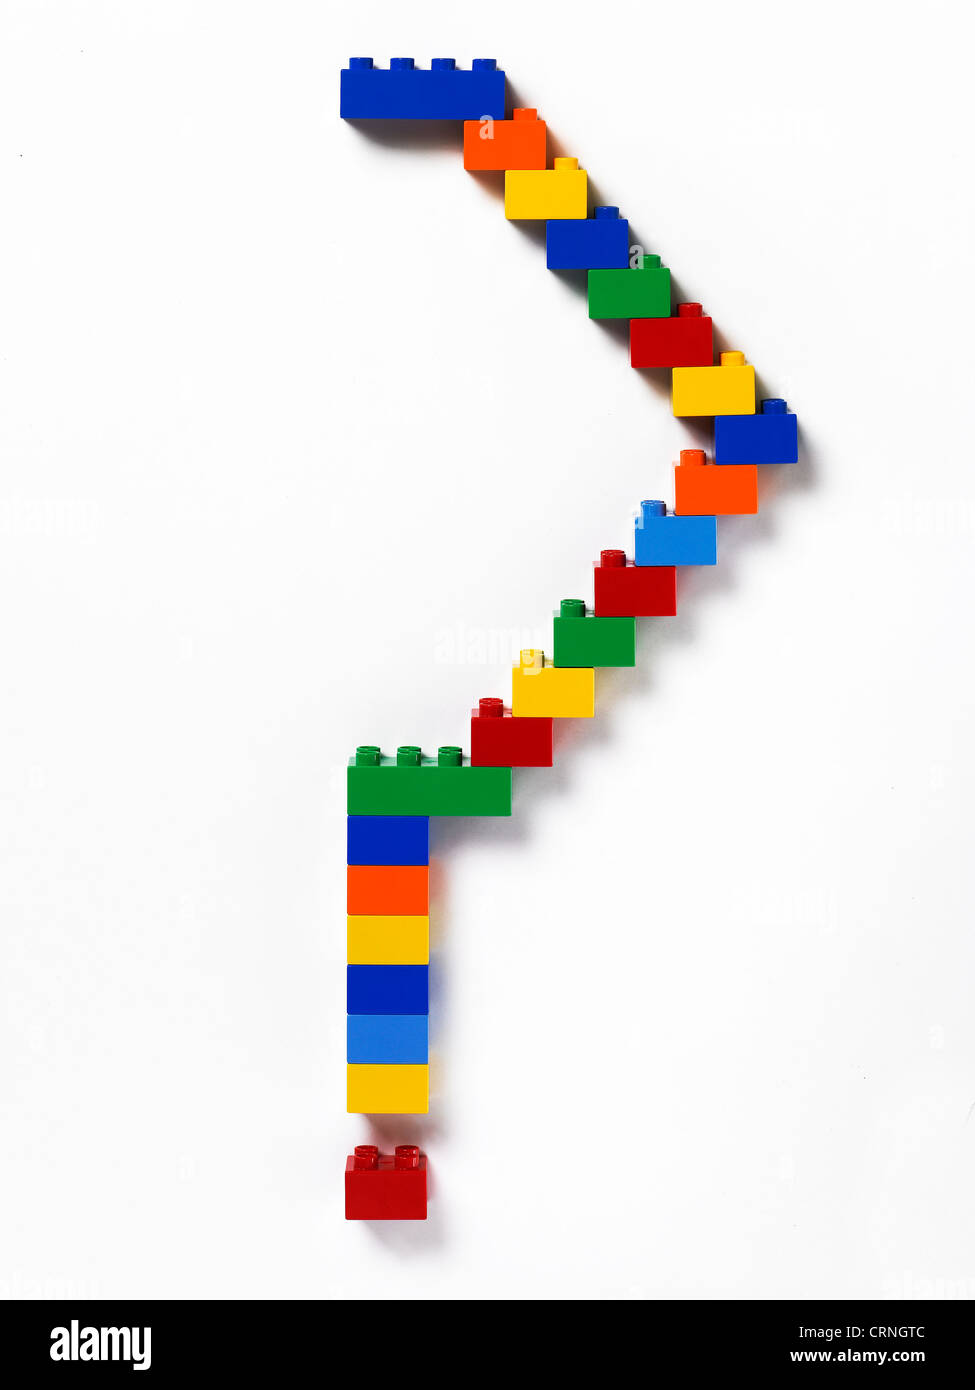 Coloured plastic building bricks in the shape of a question mark - Stock Image